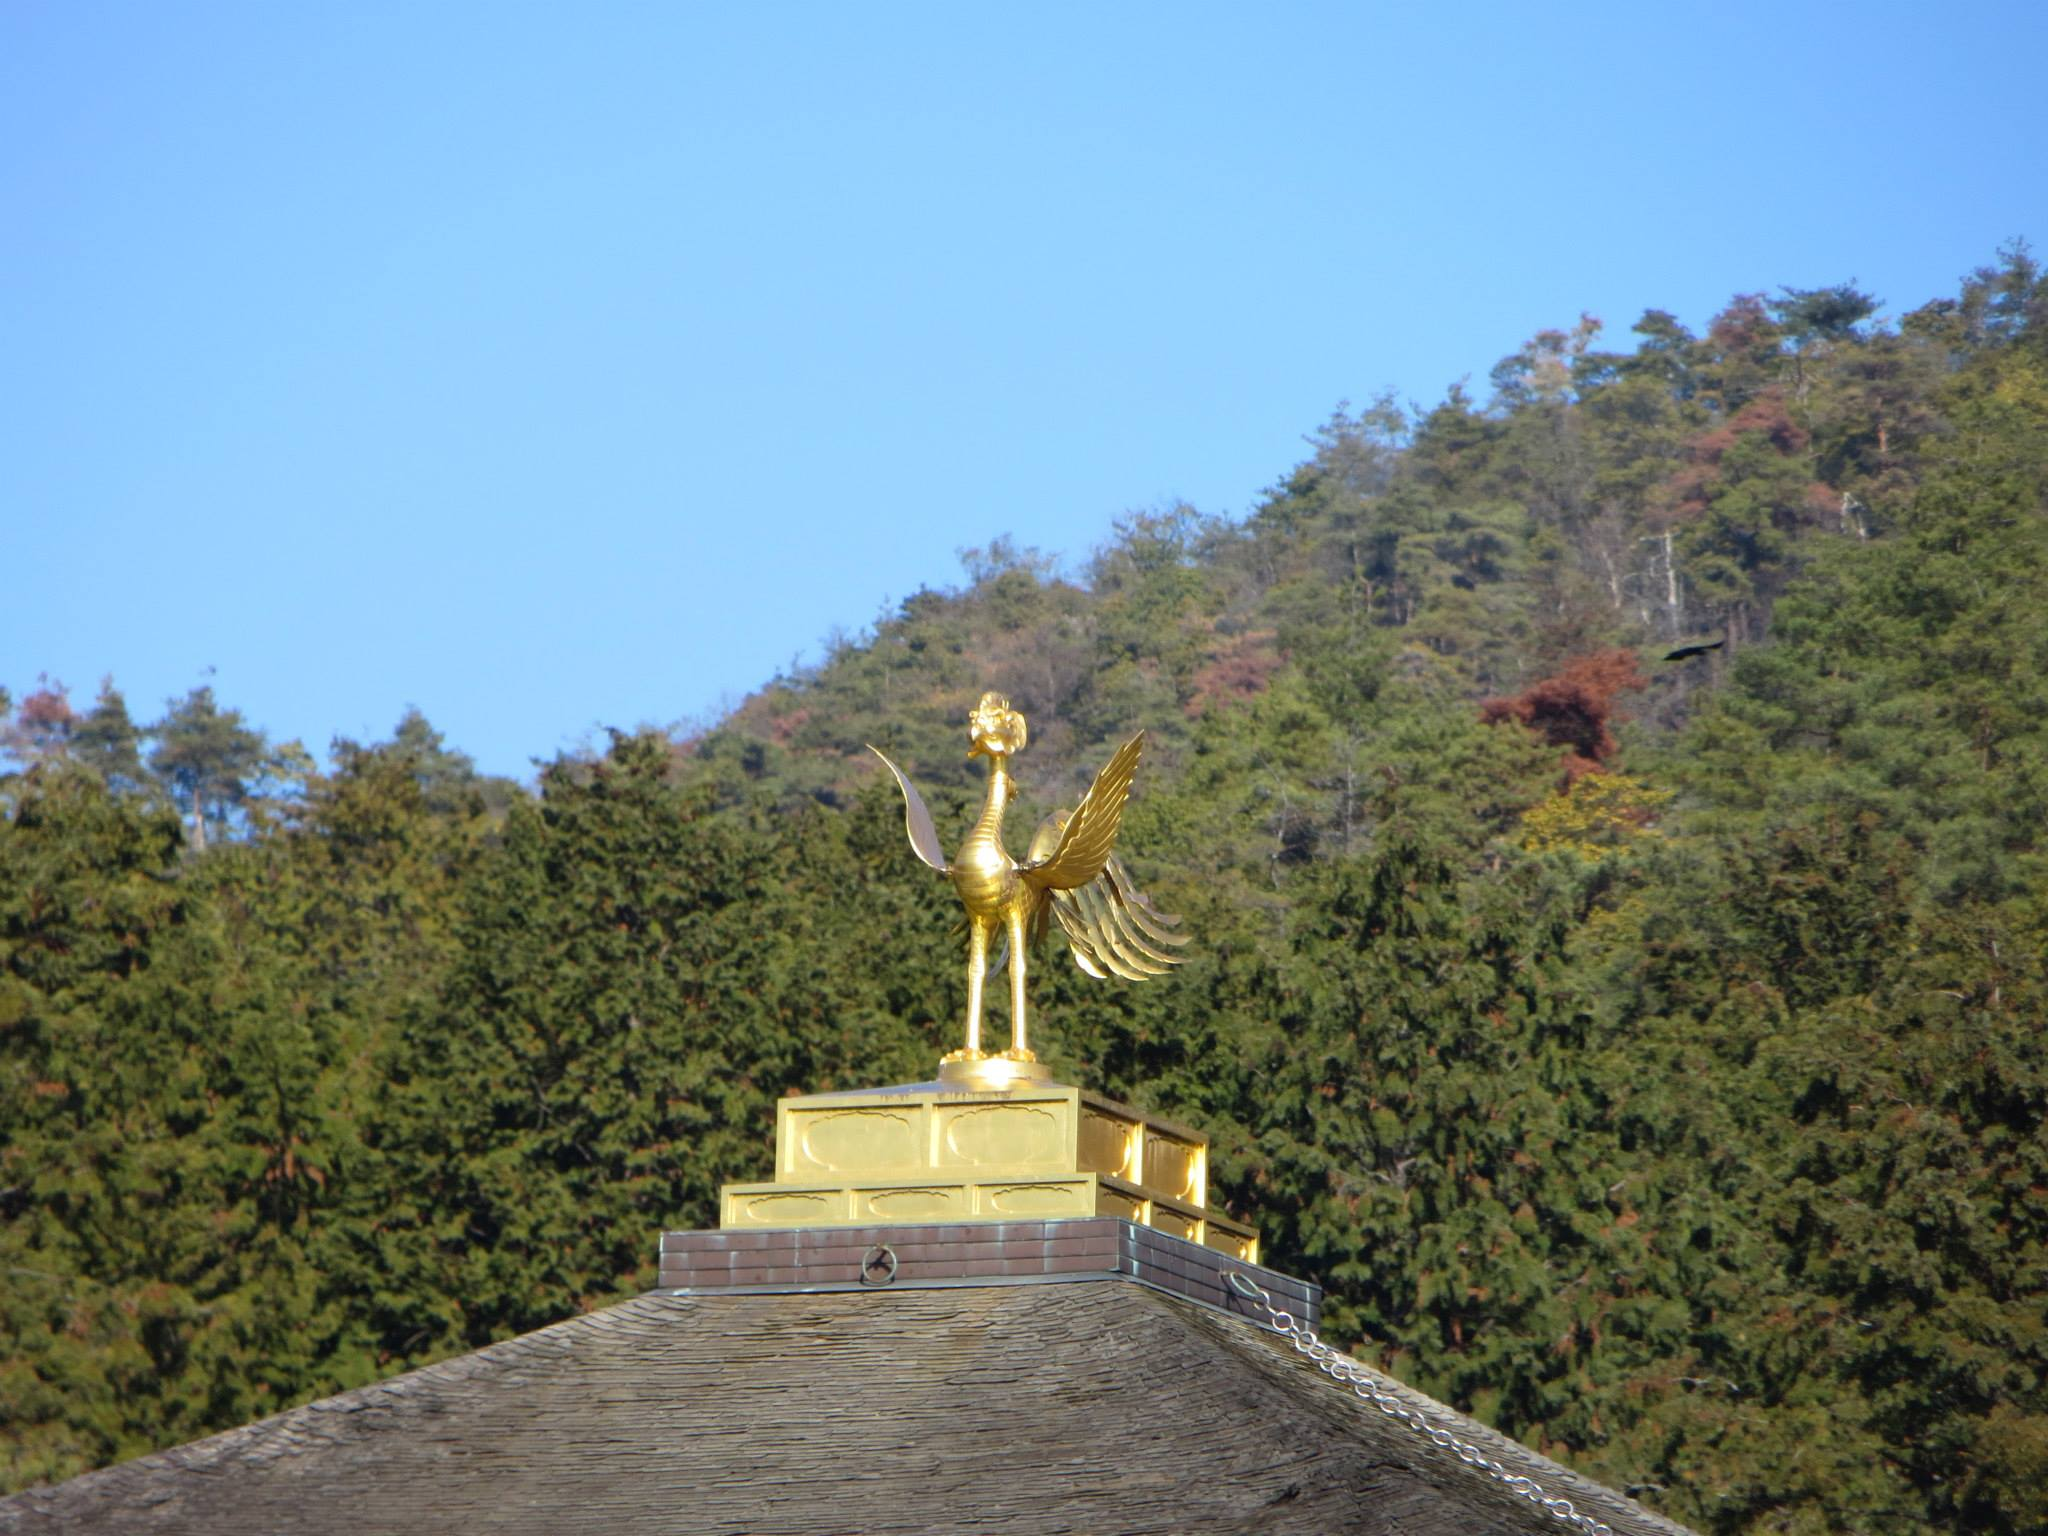 Top of temple